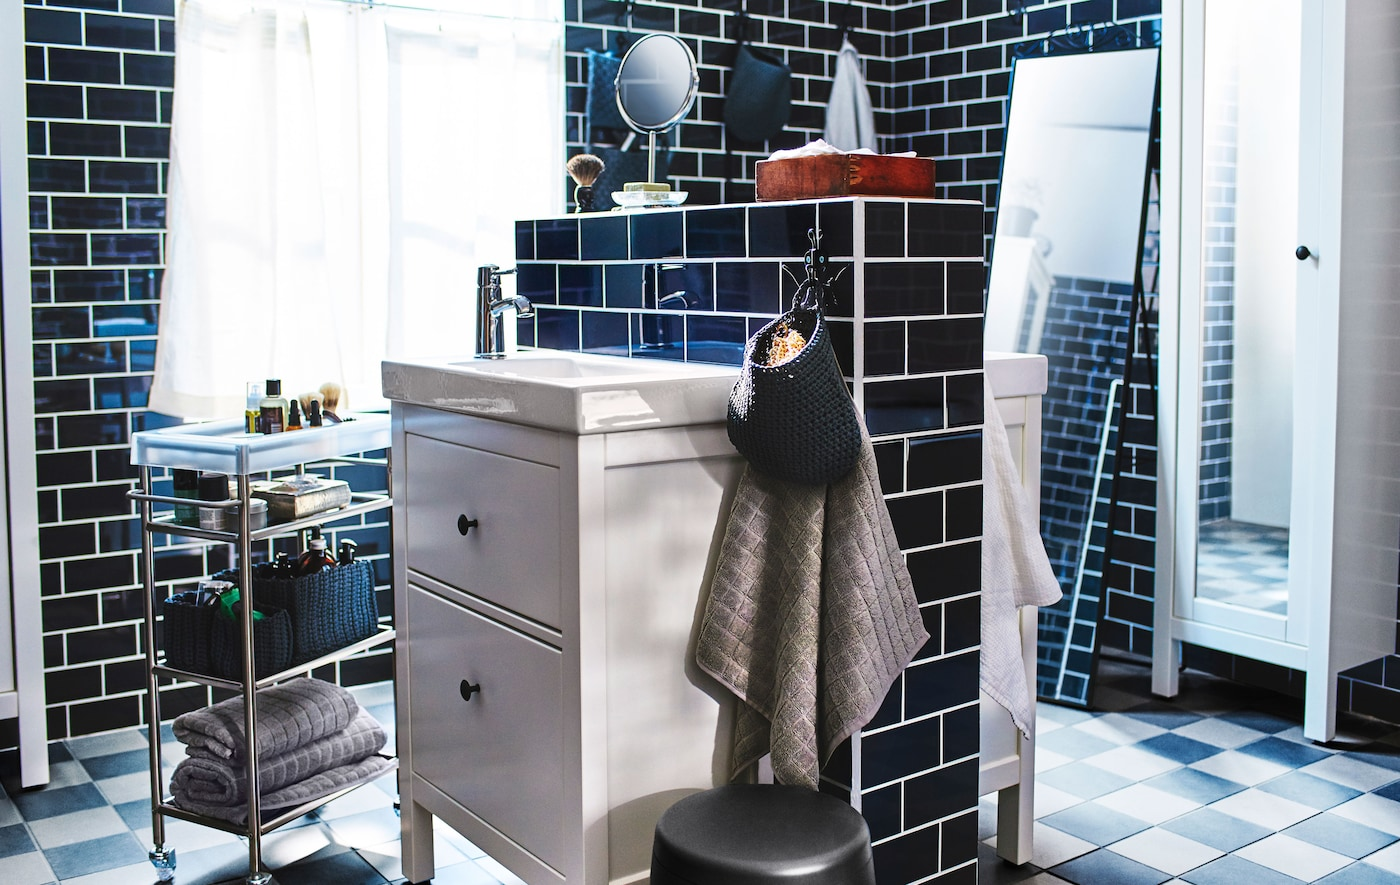 Two bathroom sinks and washstands mounted back to back in the centre of a large, black tiled bathroom.